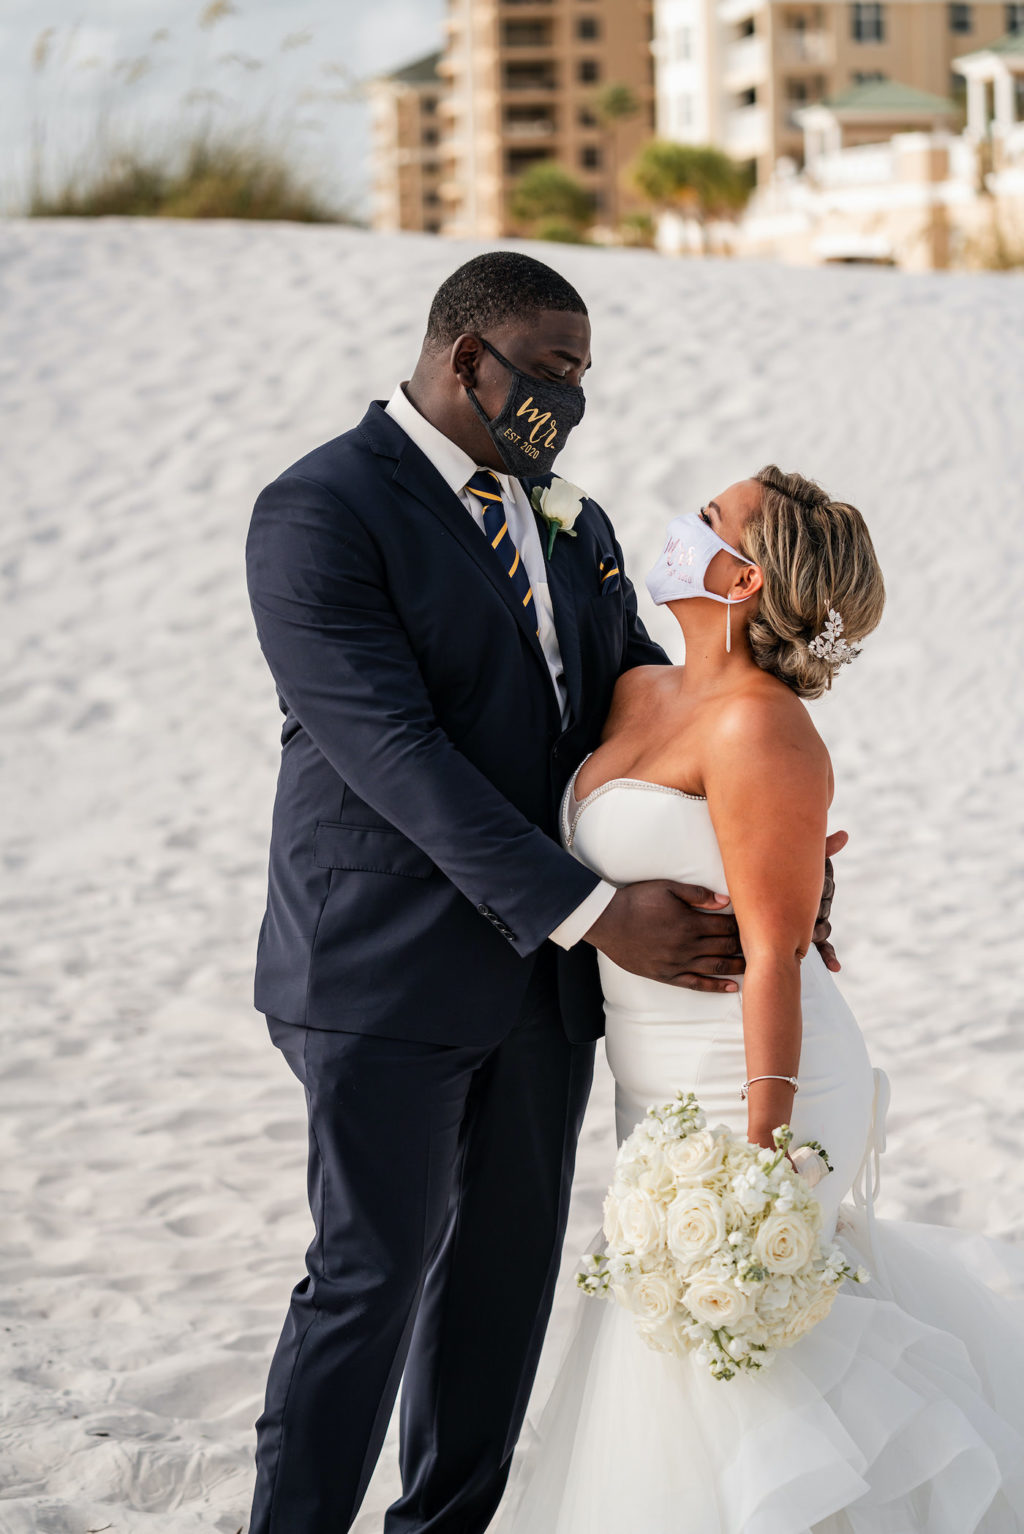 Destination Wedding During Pandemic. COVID Bride and Groom Beachfront Wedding Portraits Wearing Mr. and Mrs. Masks, Romantic Tropical Bride and Groom Just Married on the sand of Clearwater Beach, Bride Wearing Sophisticated Fit and Flare Strapless Wedding Dress | Florida Gulf of Mexico Hotel and Wedding Venue Hilton Clearwater Beach